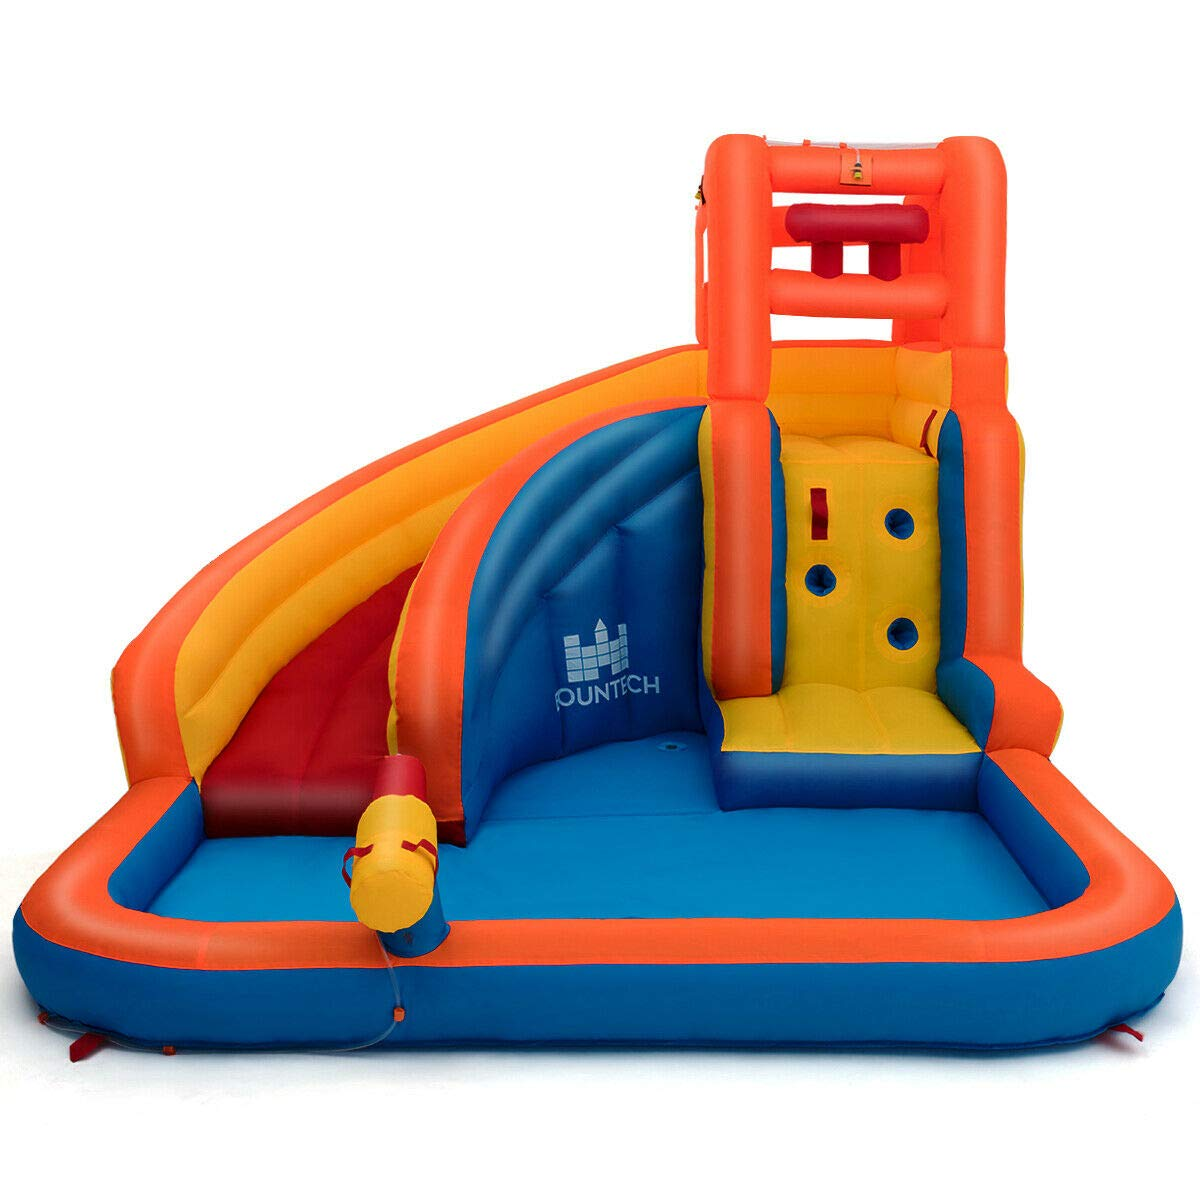 Heize Best Price Orange Inflatable Splash Water Bouncer Slide Bounce House w/ Climbing Wall & Water Hose Splash Pool(U.S. Stock) by Heize Best Price (Image #2)